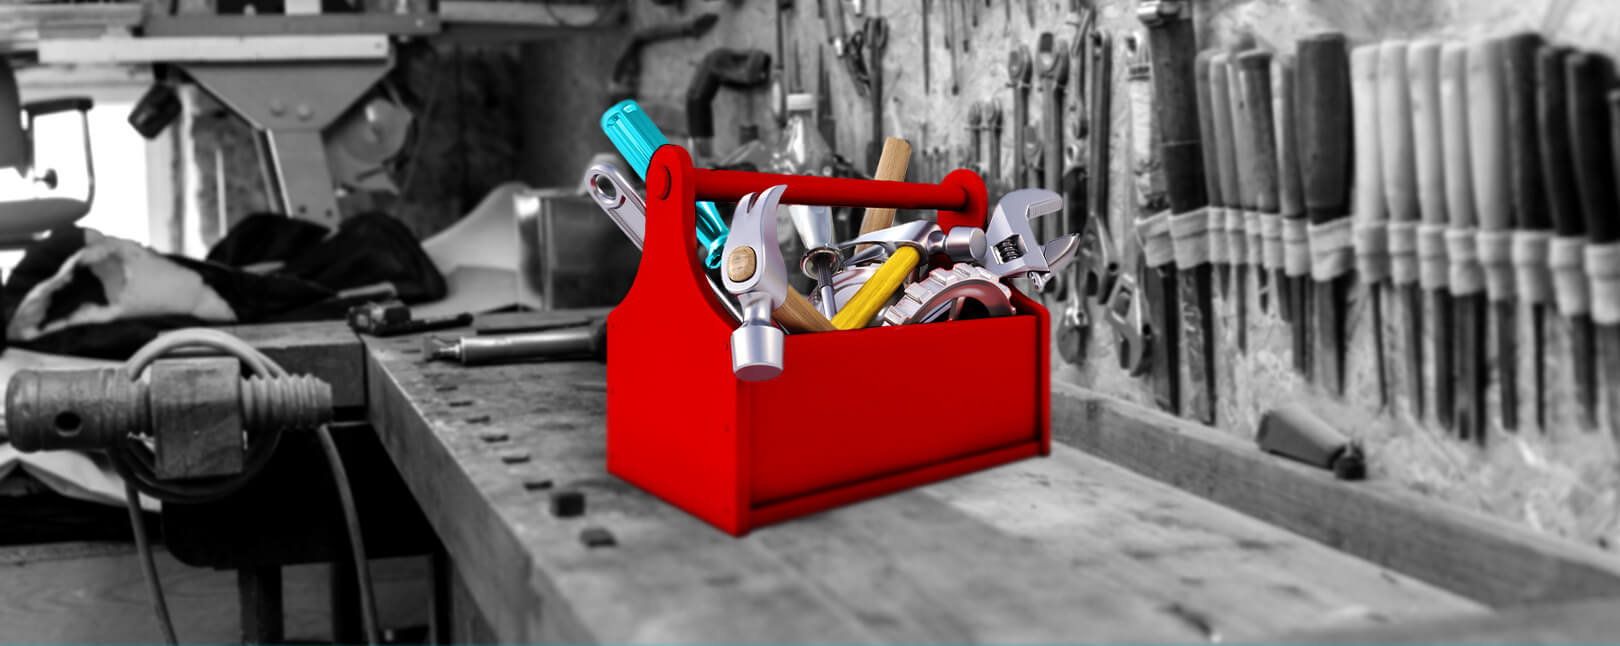 chargeback prevention tools